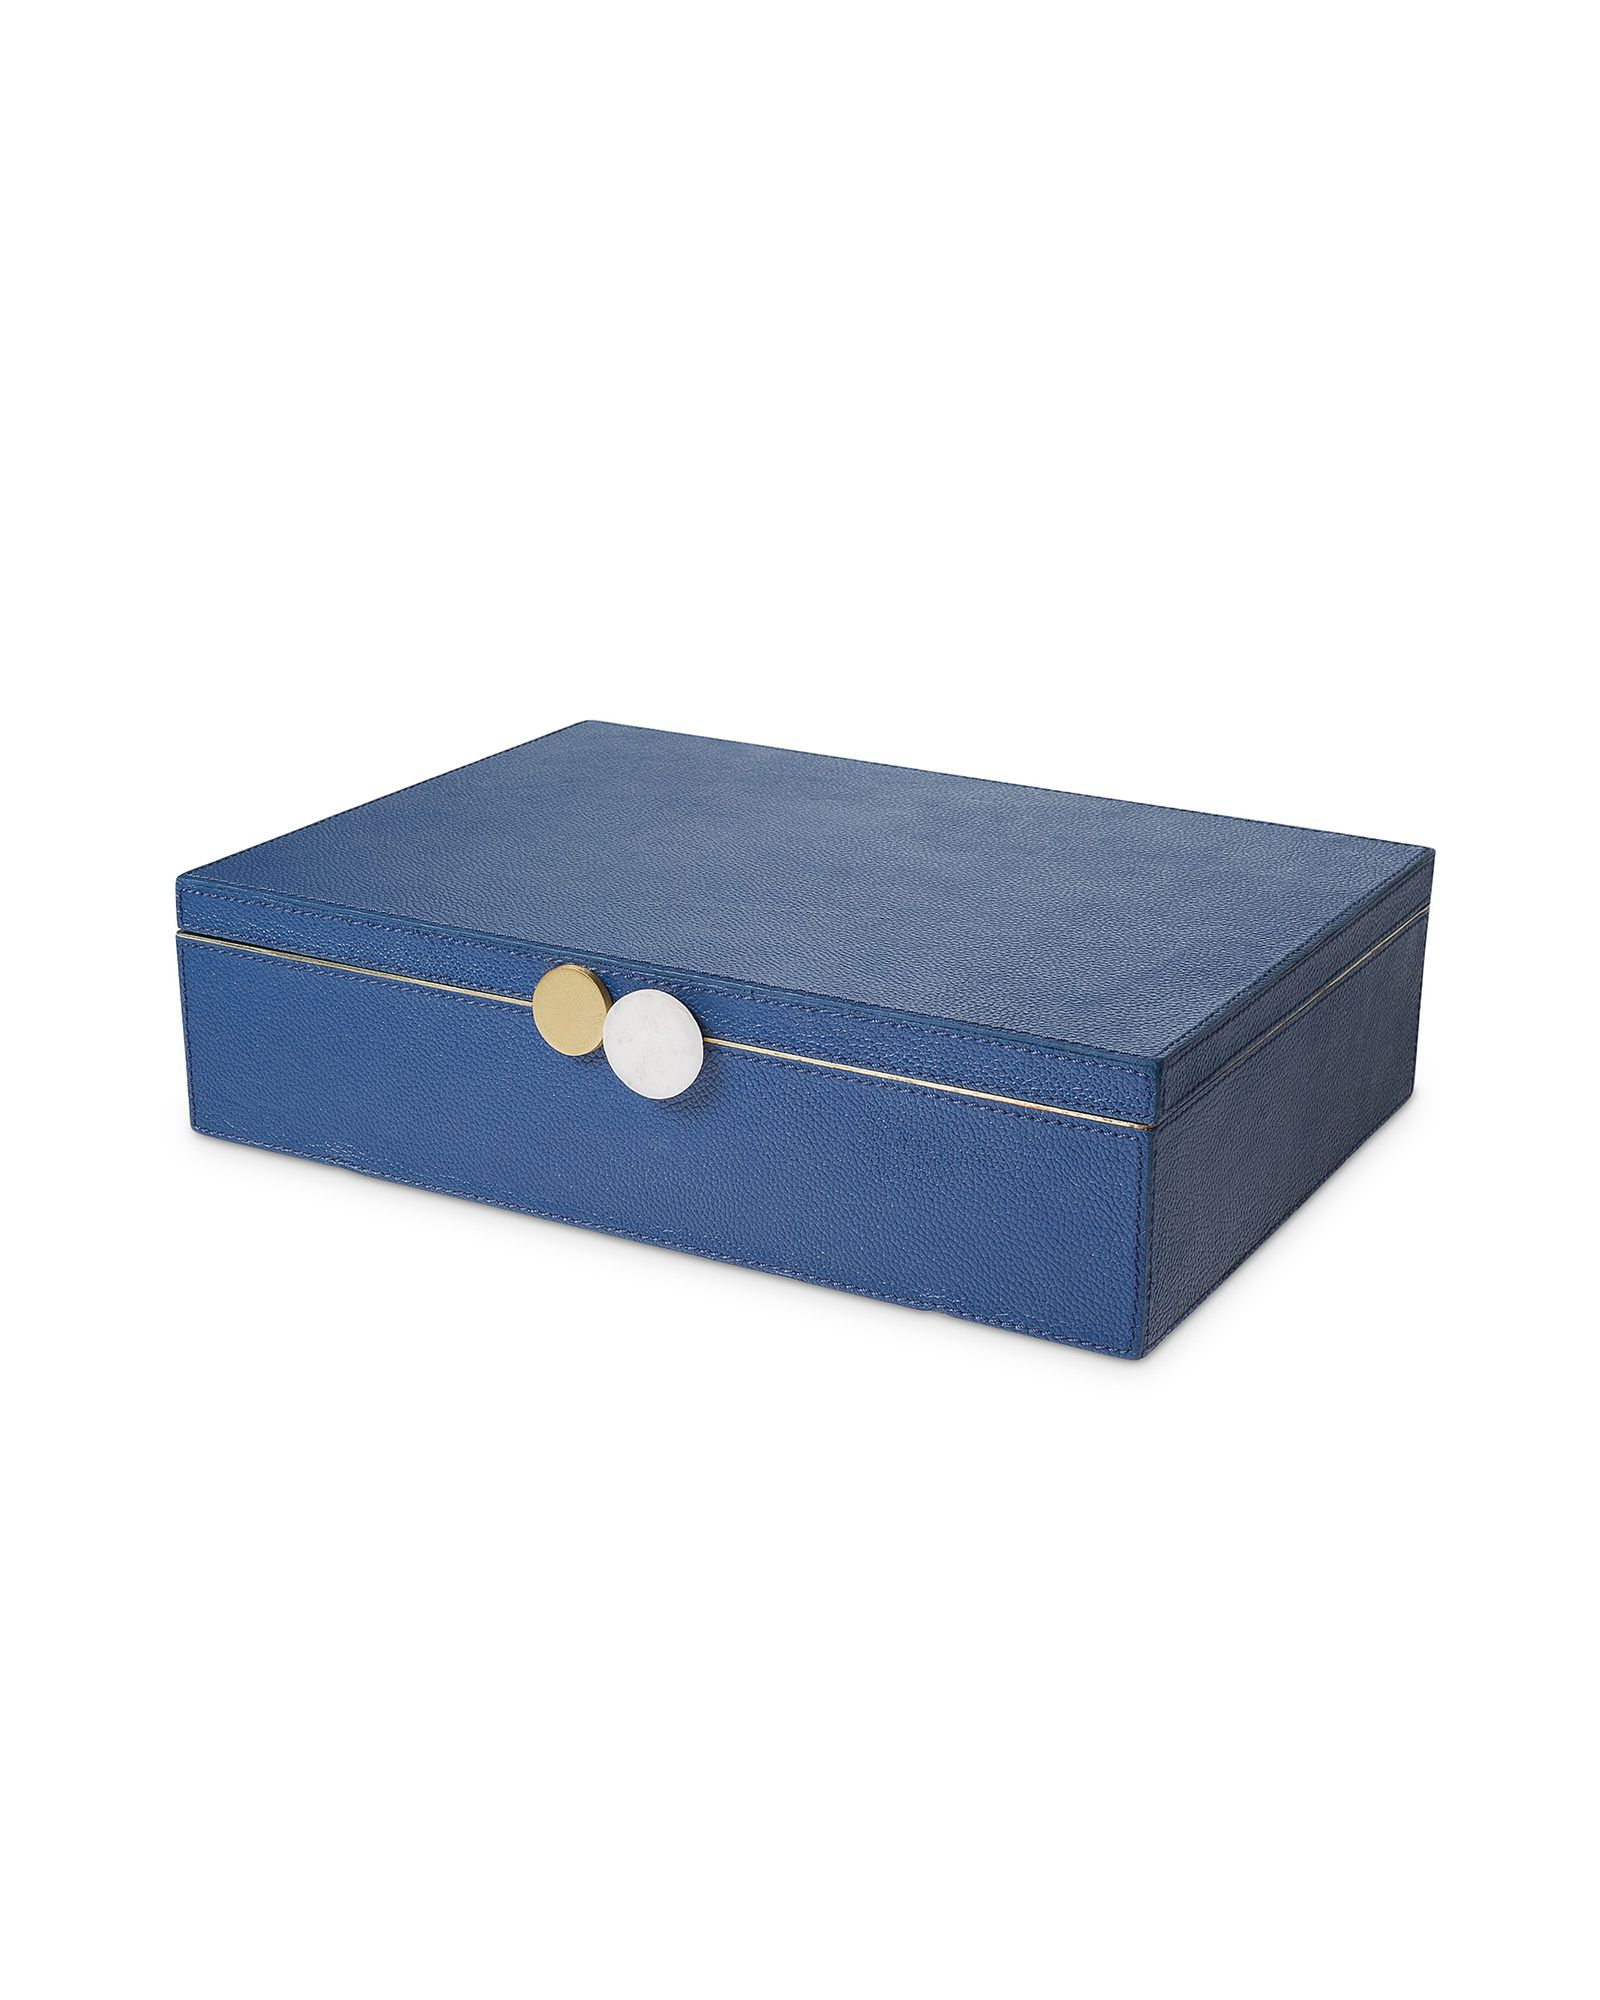 Leather Jewellery Box Large Own Brand Leather Jewelry Box